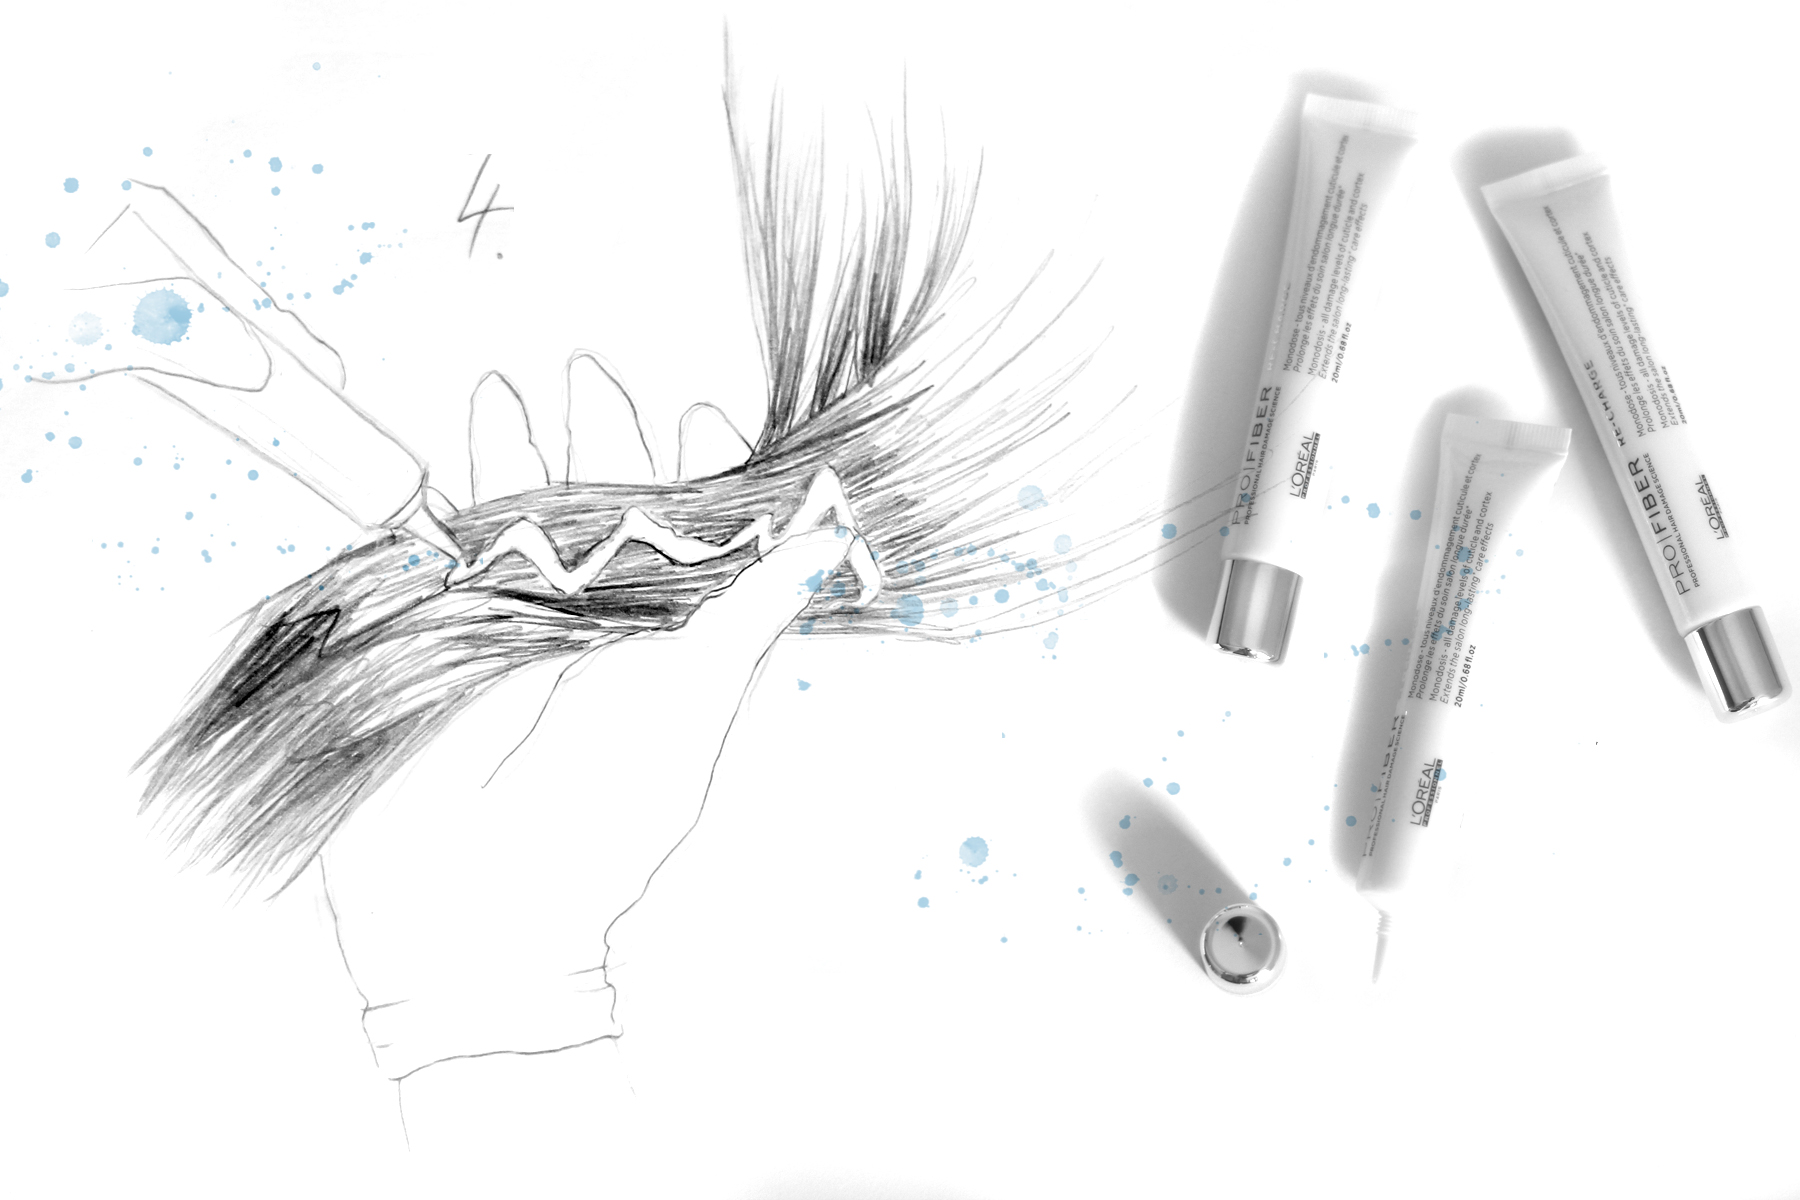 pro fiber l'oréal professionel hair treatment neue pflegerevolution beauty beautyblogger düsseldorf ricarda schernus blog illustration drawing art cats & dogs berlin 2